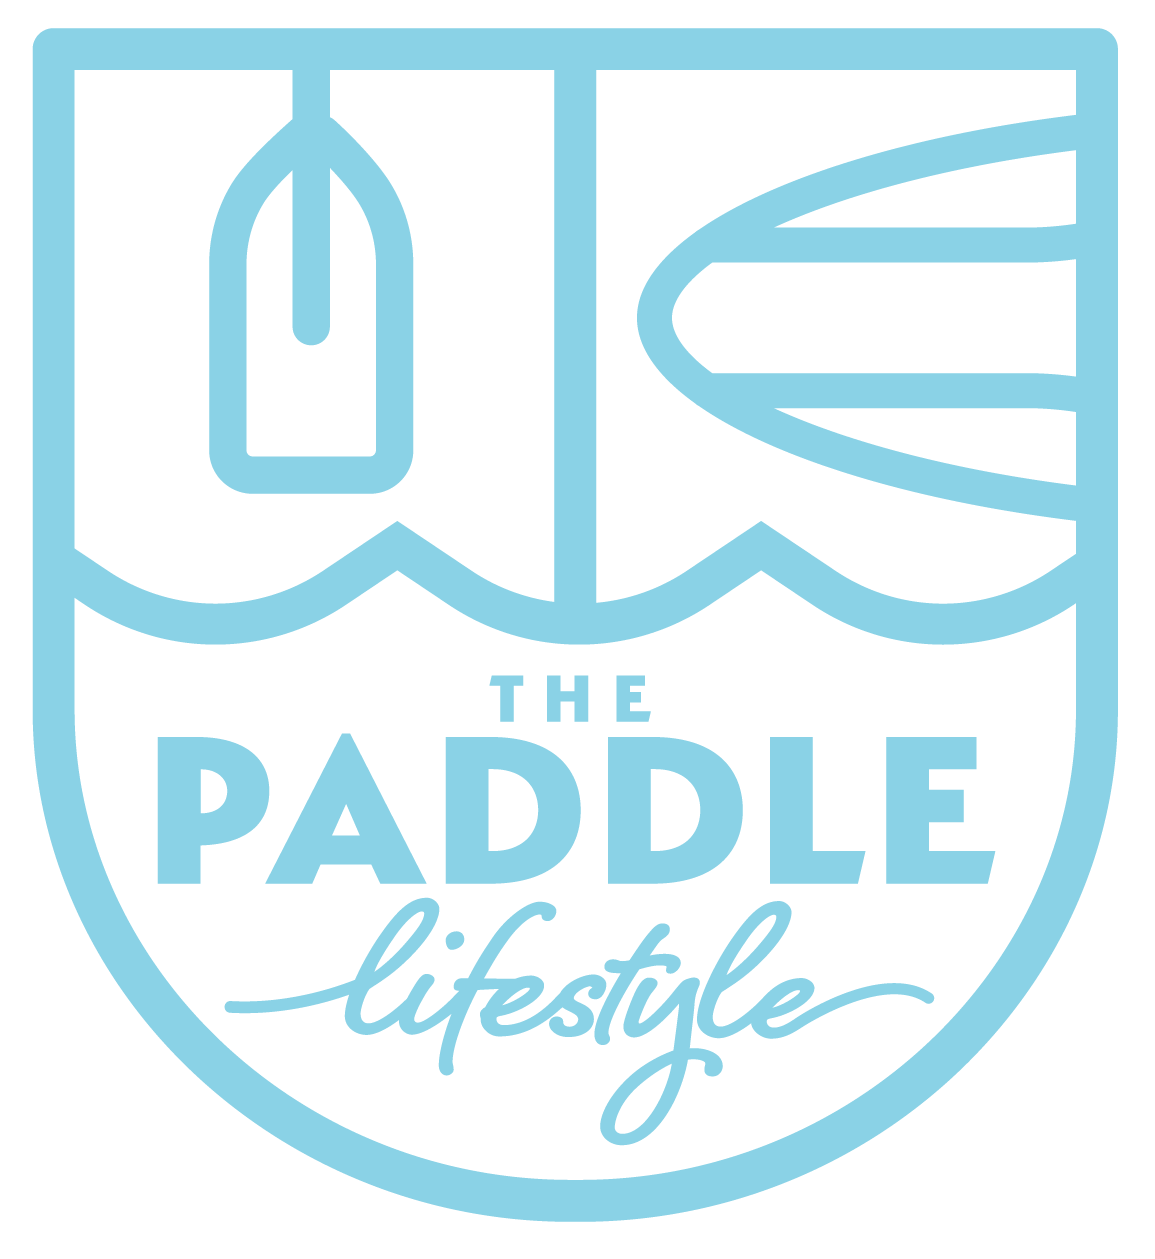 The Paddle Lifestyle